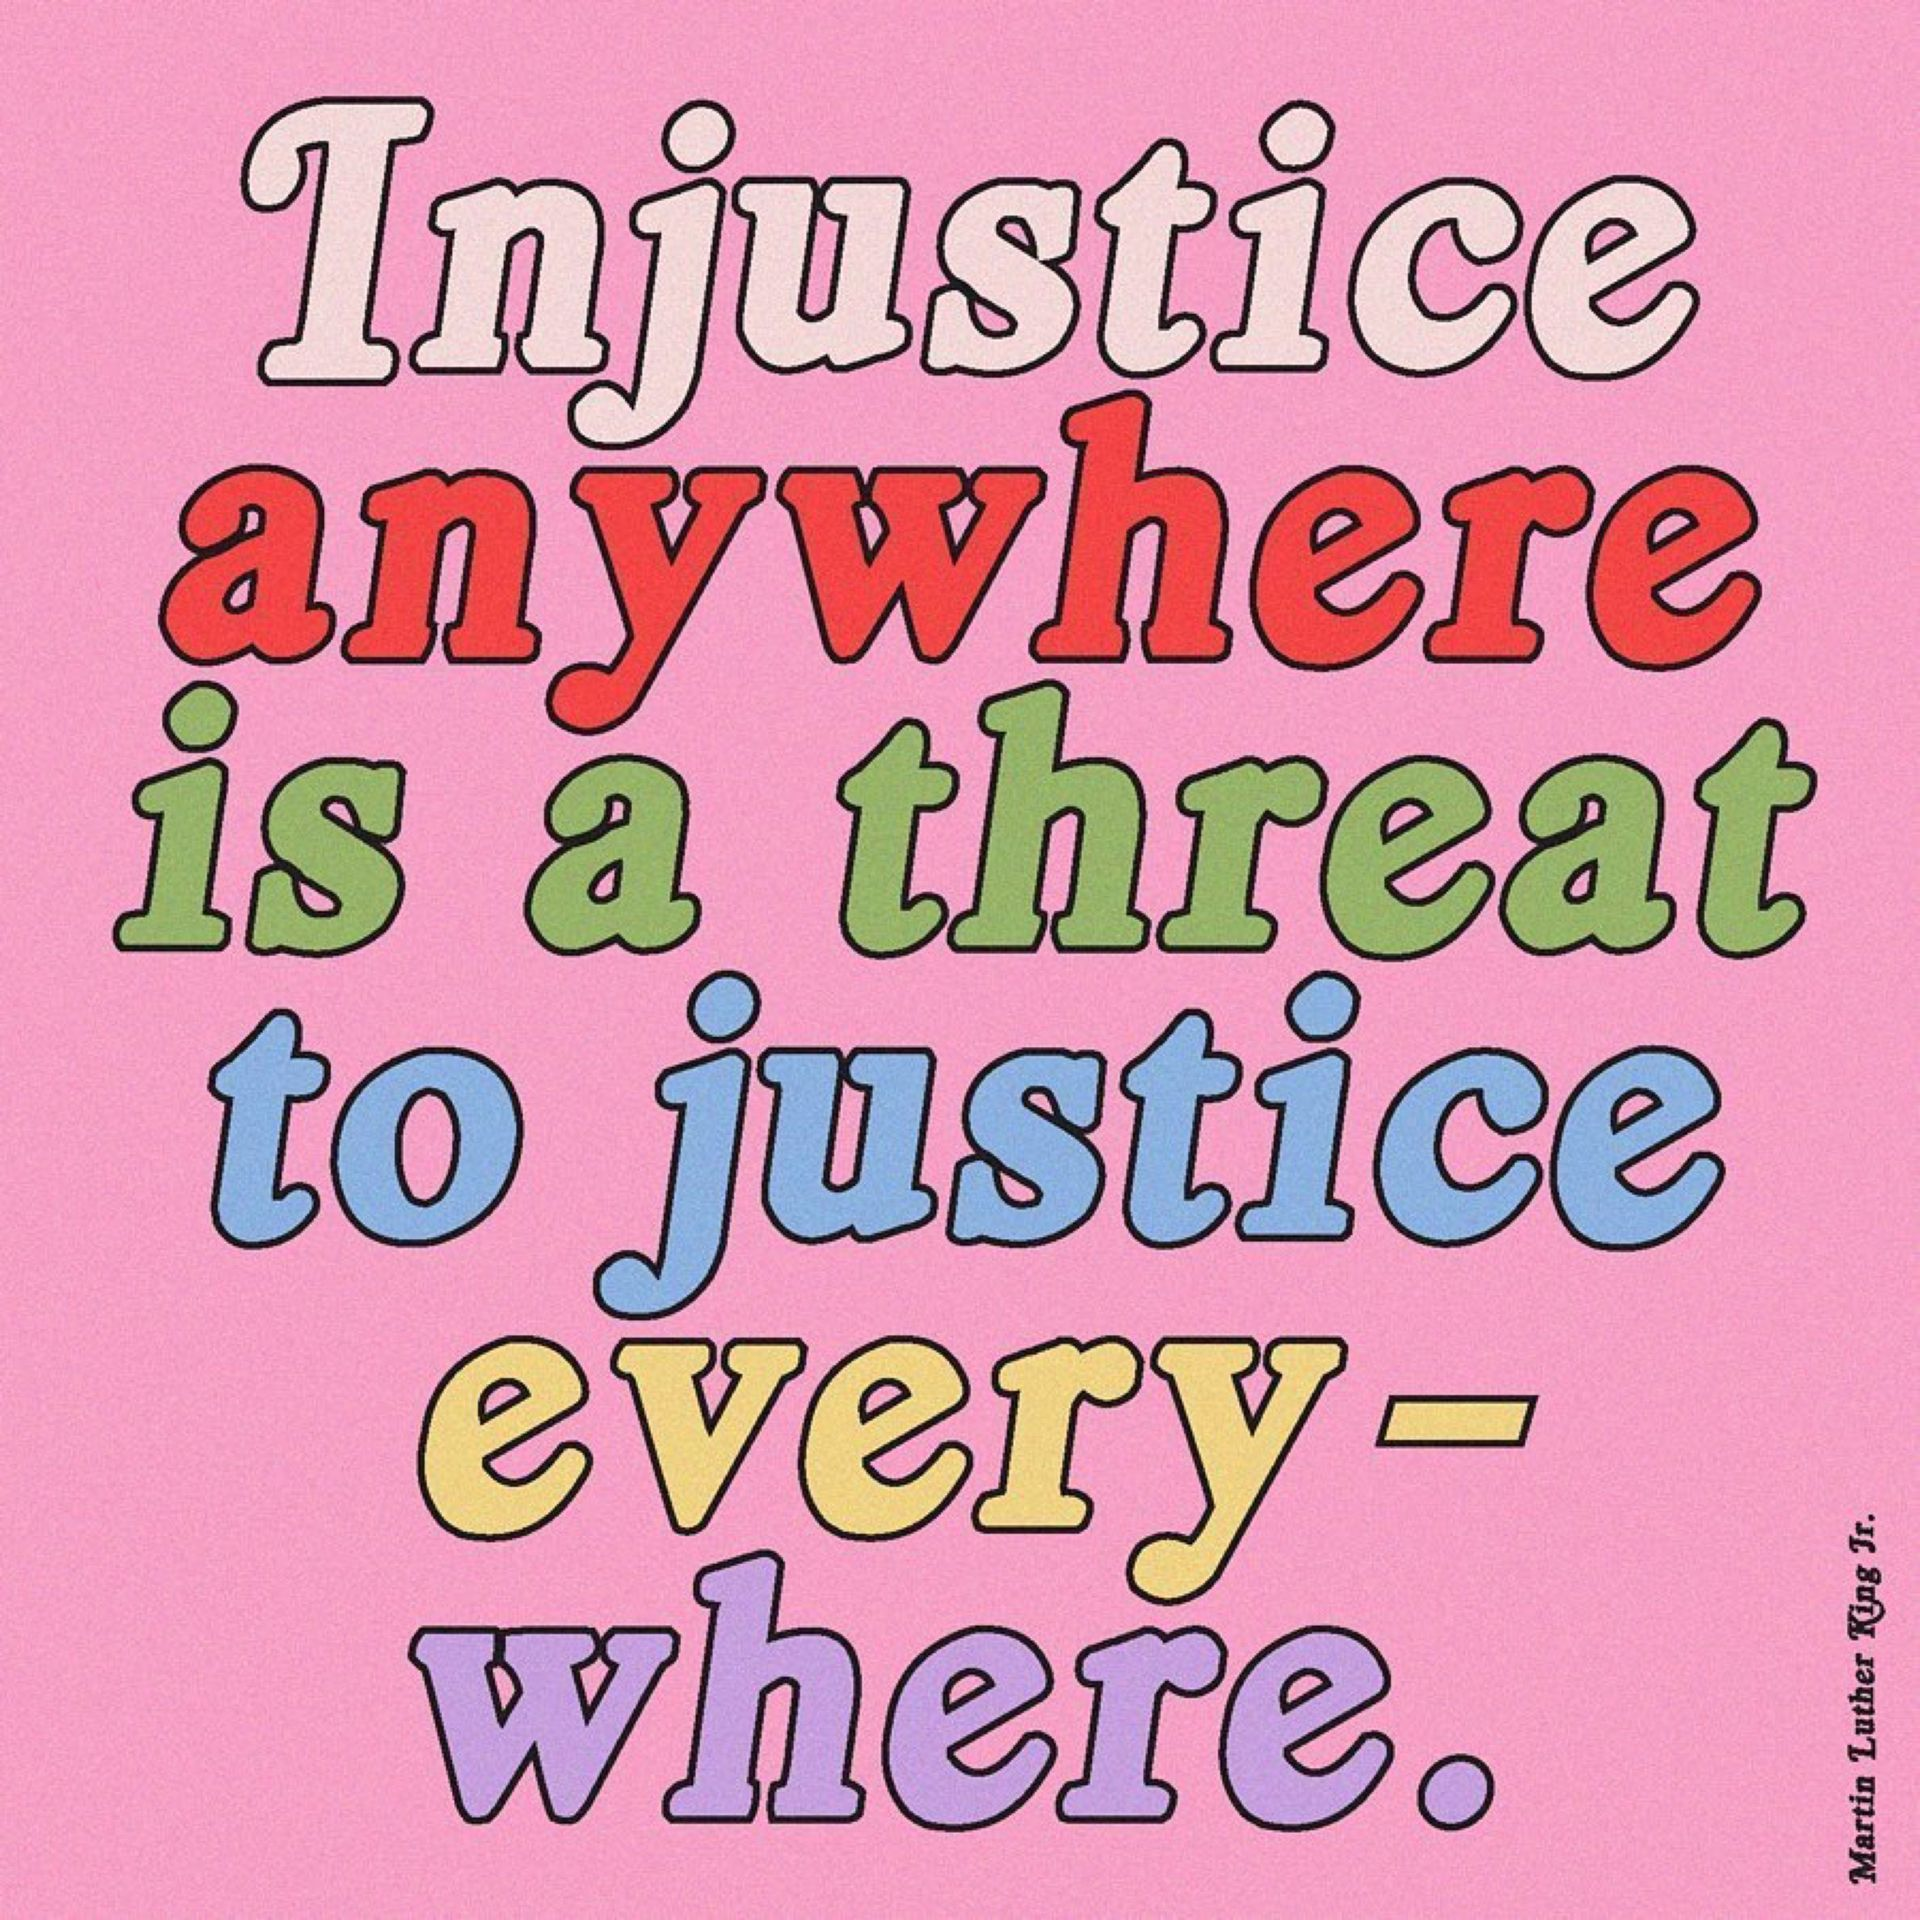 Justice For George Protest Art Art Collage Wall Quotes